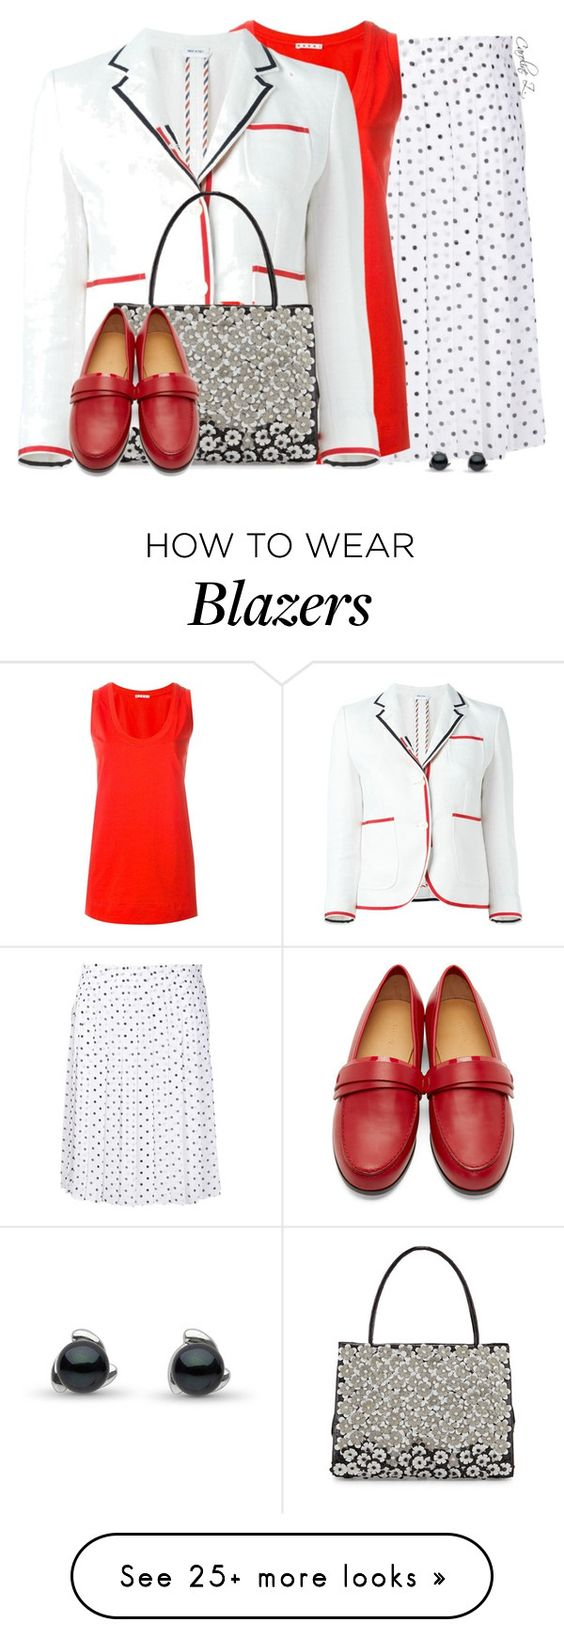 """Red Flats"" by carolinez1 on Polyvore featuring Theory, Marni, Thom Browne, Nancy Gonzalez and Carritz"